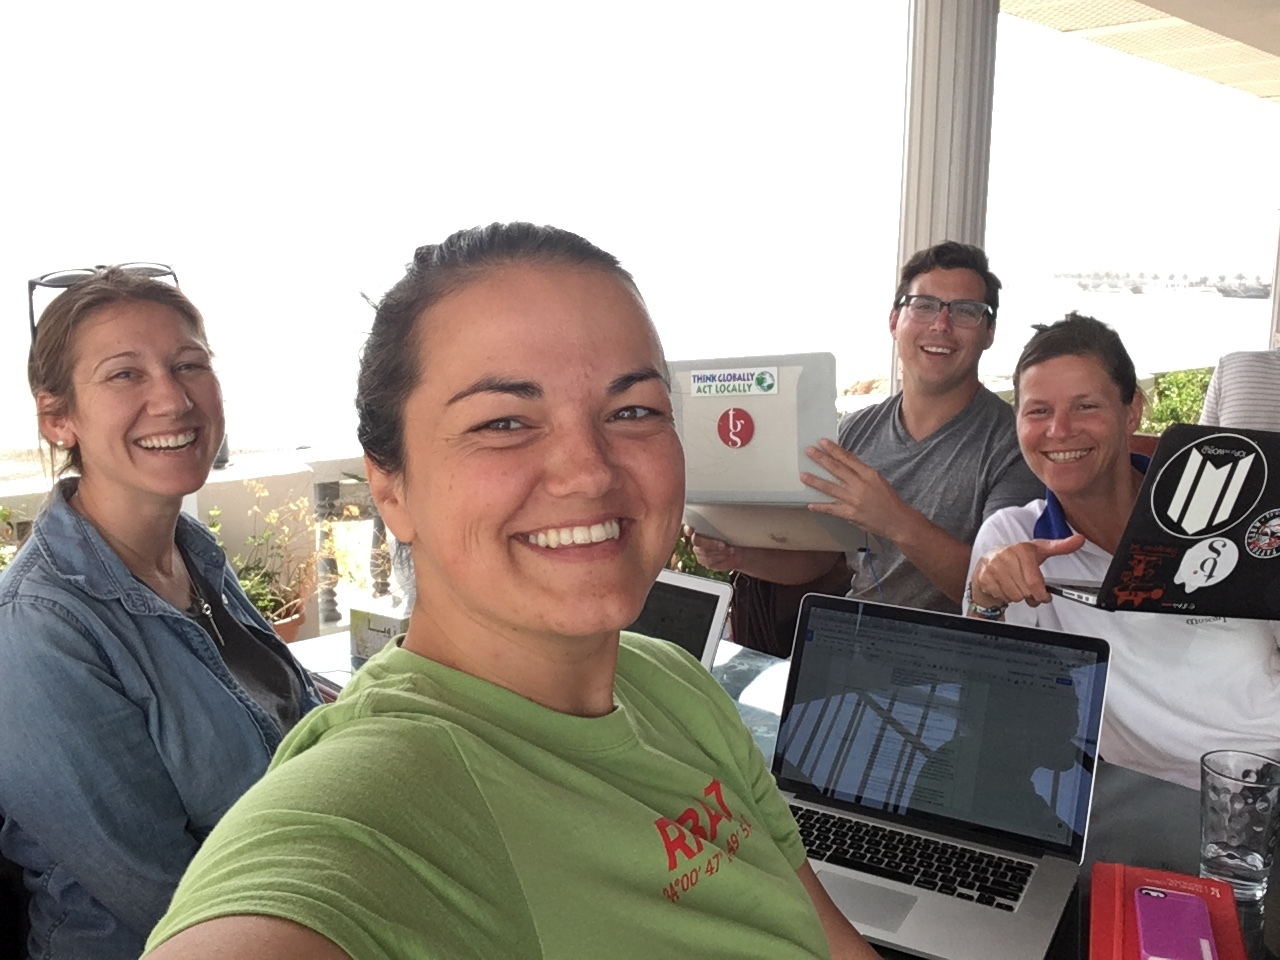 Writing curriculum with the team in Oman